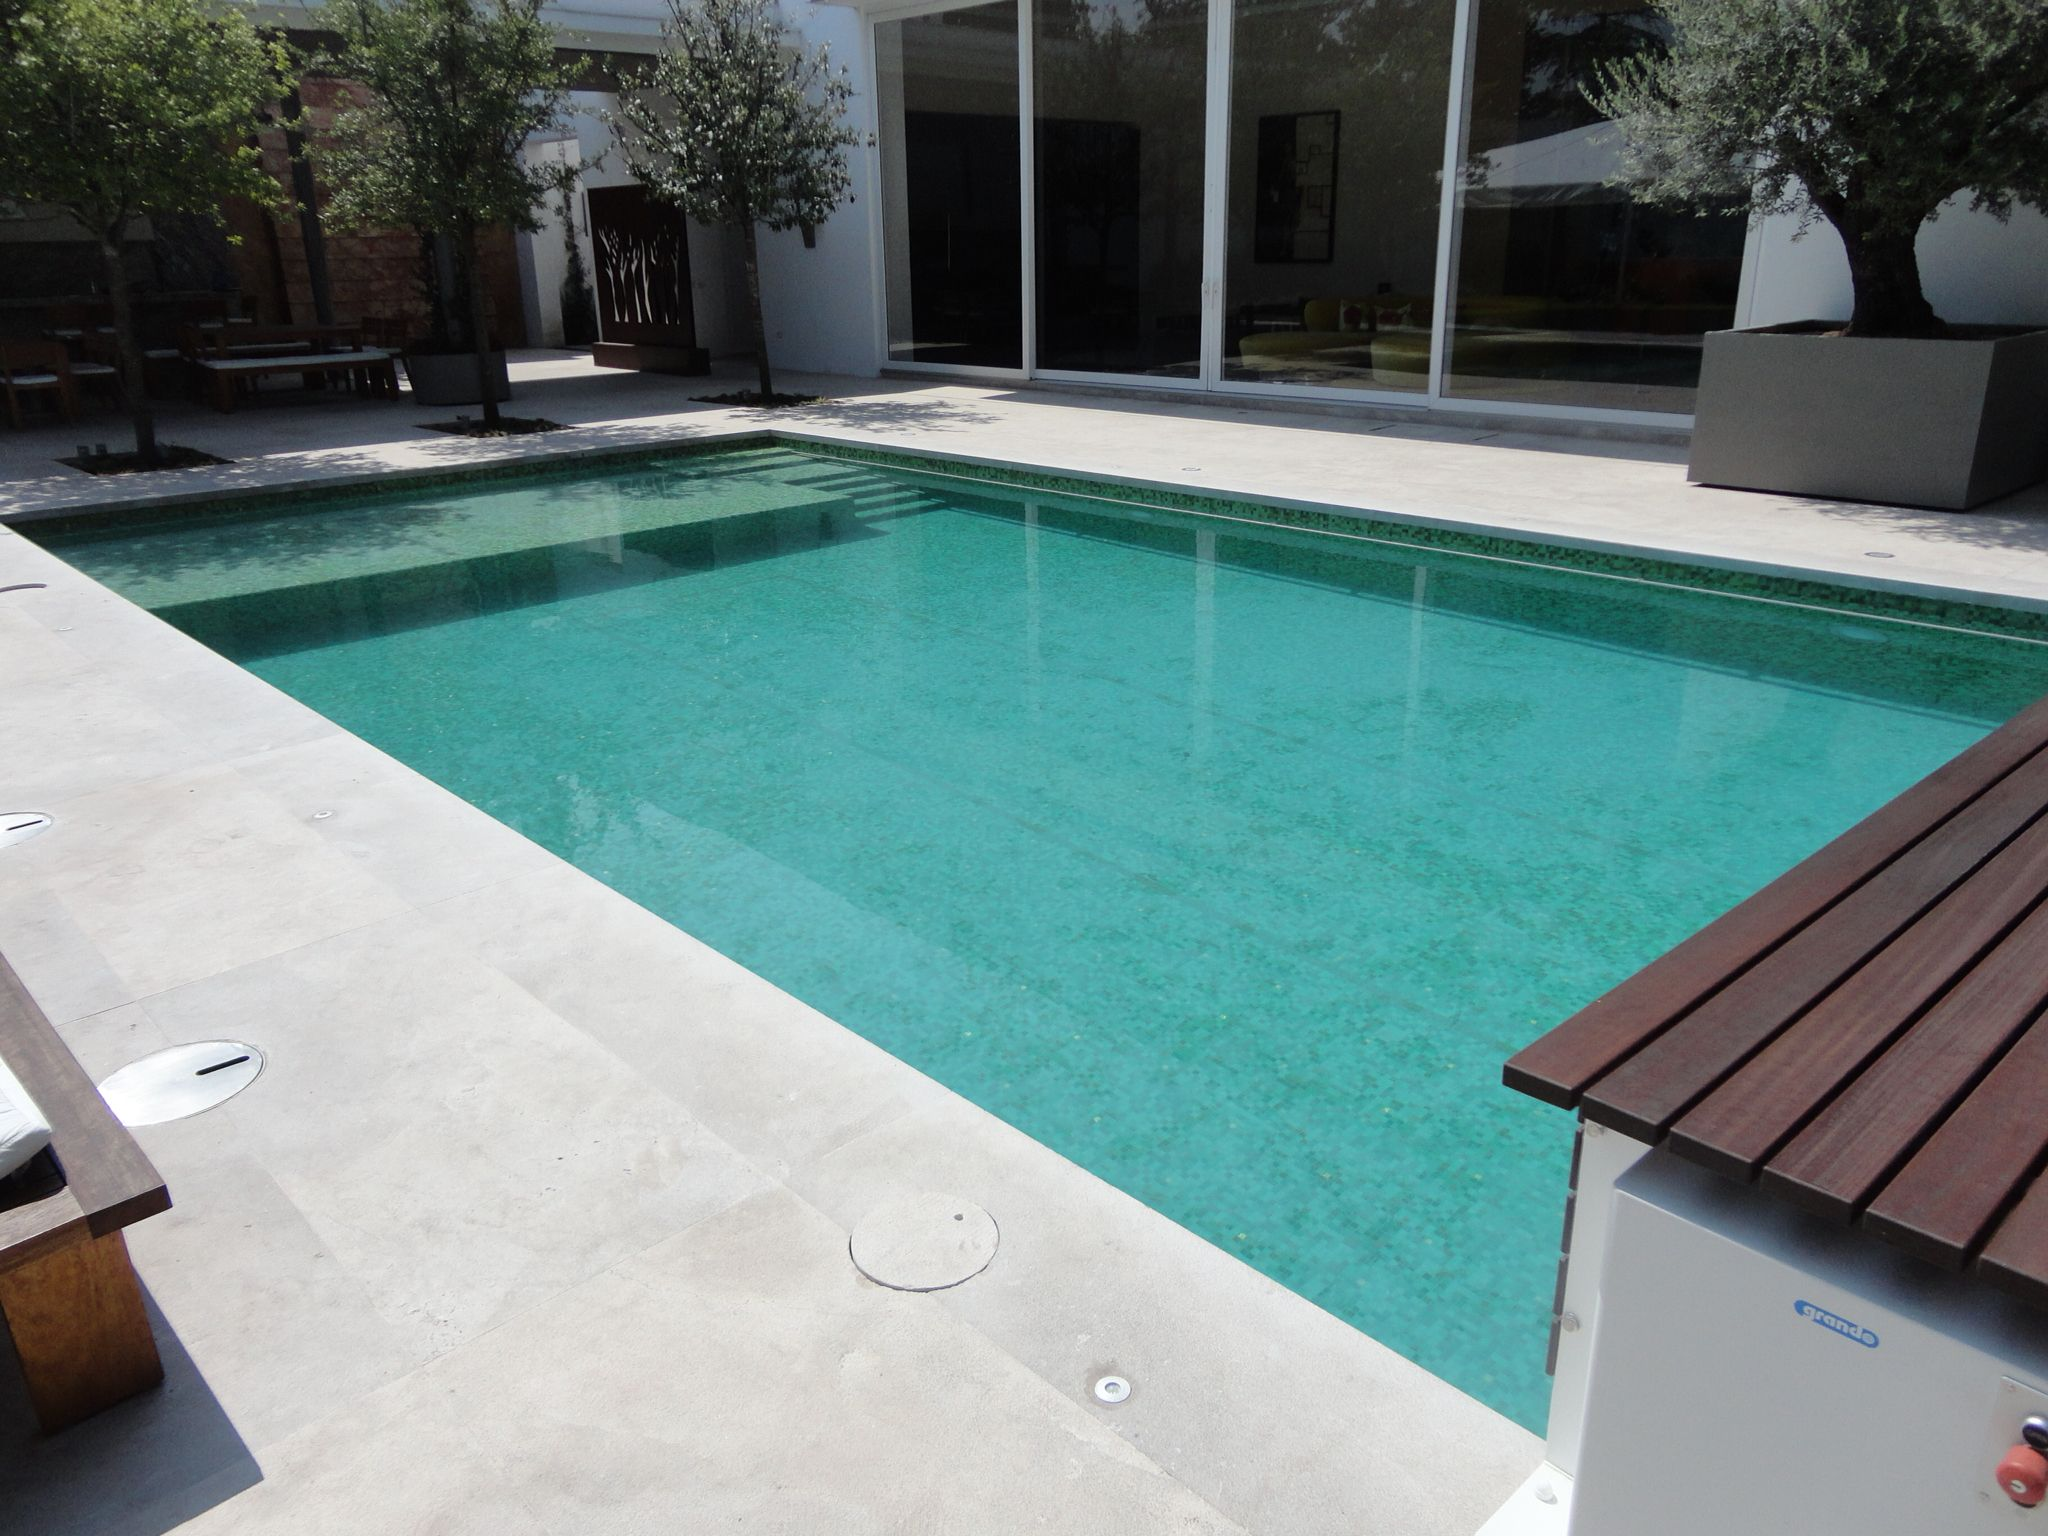 Jacuzzi Pool De Recreational Pool Piscina Residencial De 10 X 5 Con Asoleadero Y